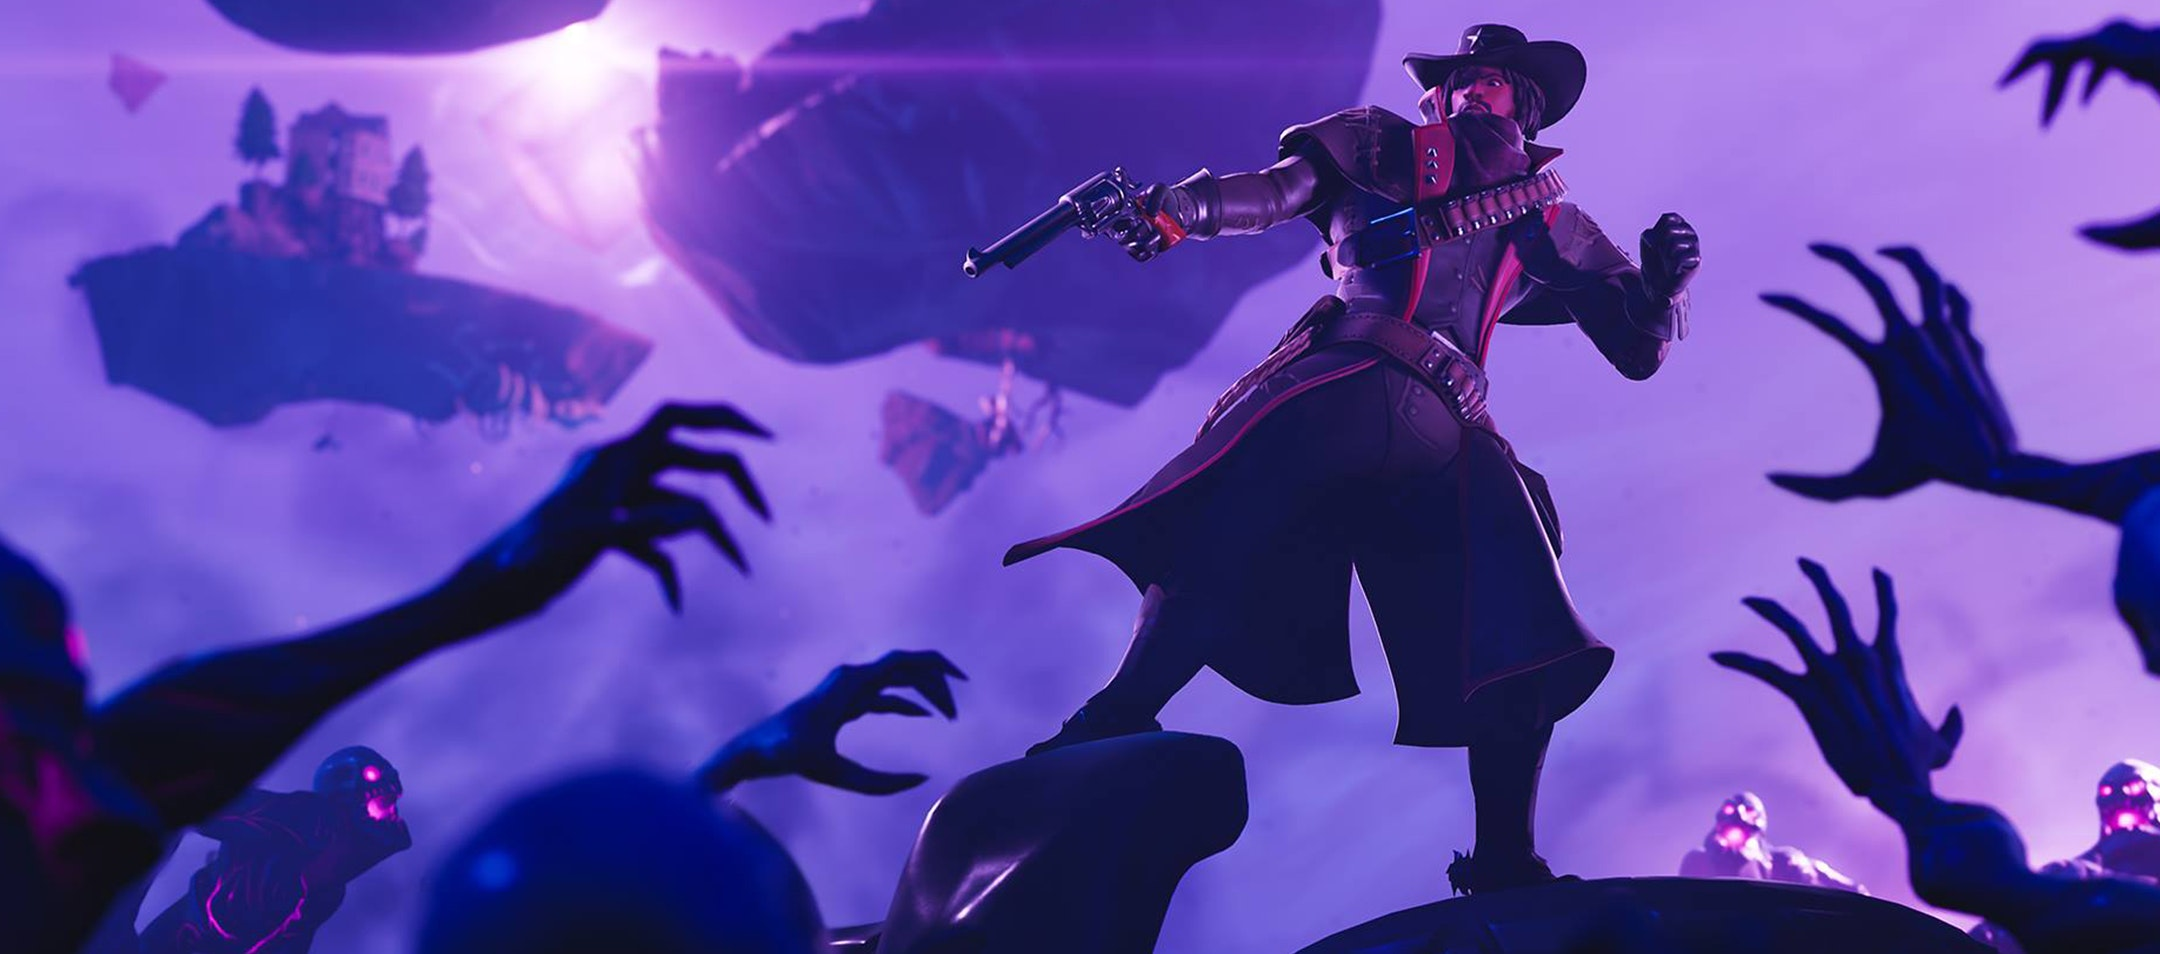 Forum on this topic: Fortnitemares 2019: All the Halloween-themed updates that , fortnitemares-2019-all-the-halloween-themed-updates-that/